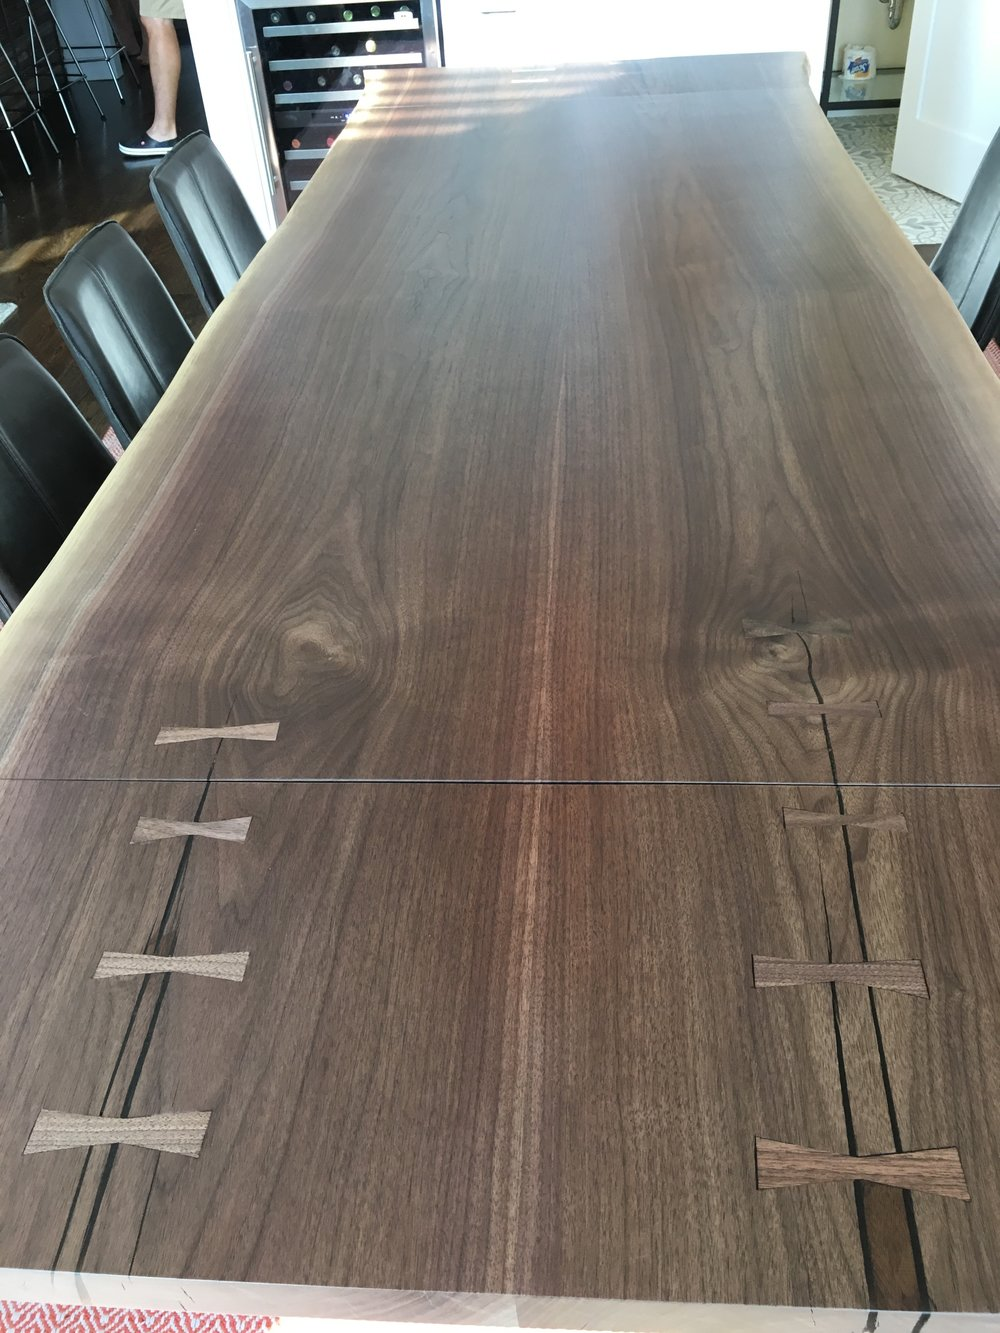 Bowties, fills, and add ons  - We only put bowties where they need to be. These are structural and are crucial in maintaining the integrity of the slabs. We always epoxy voids in the tables so nothing finds its way in and can't get out. Company Boards - We offer custom table extensions for when you have those family get togethers and need a little more space. These are stored in a closet when not being used, and put in when the Turkeys ready!